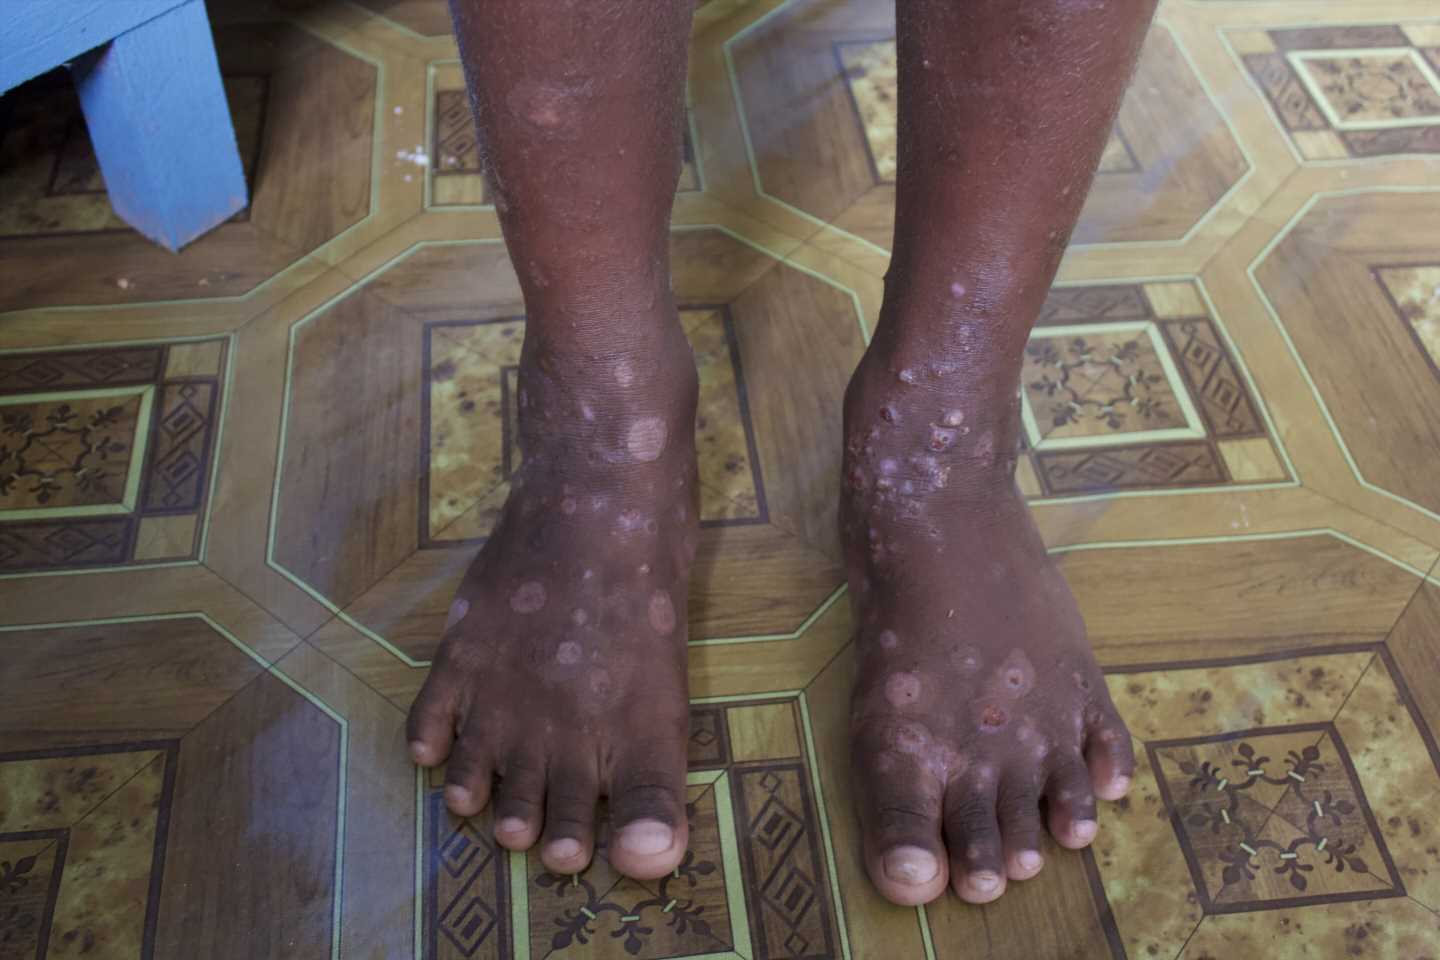 International experts call for action for world's 450 million scabies sufferers